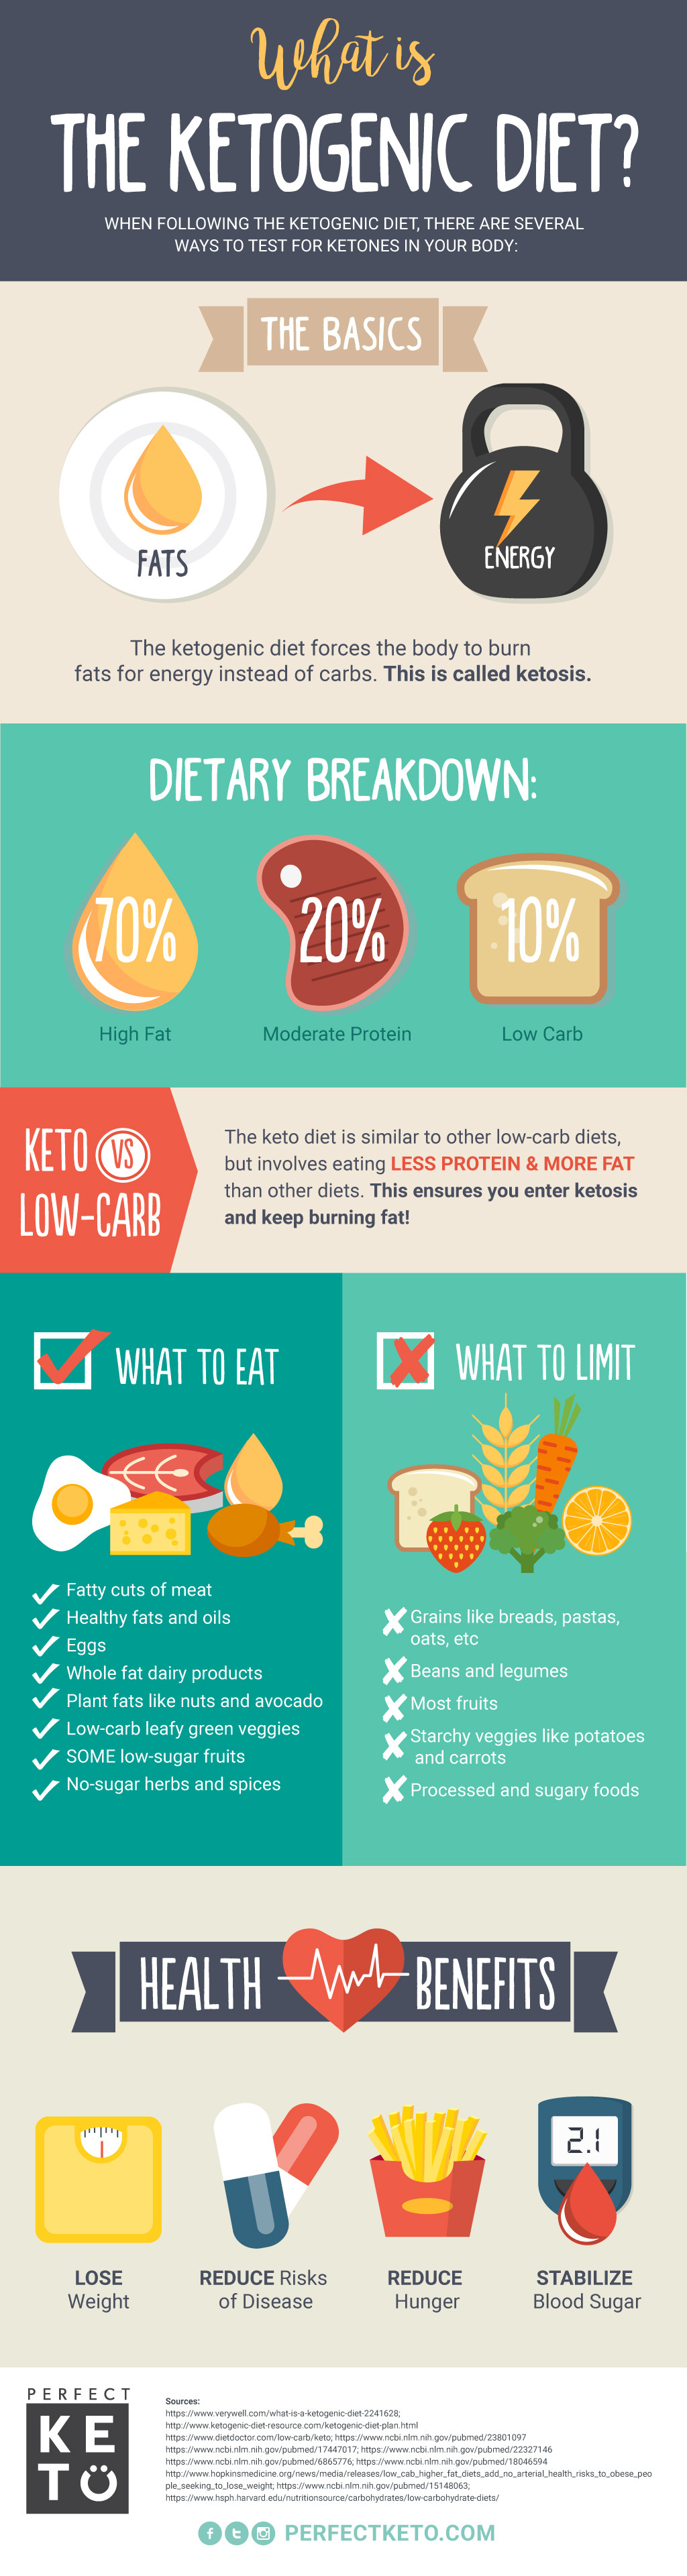 Keto Diet Is It Healthy  What Is the Ketogenic Diet Perfect Keto Exogenous Ketones